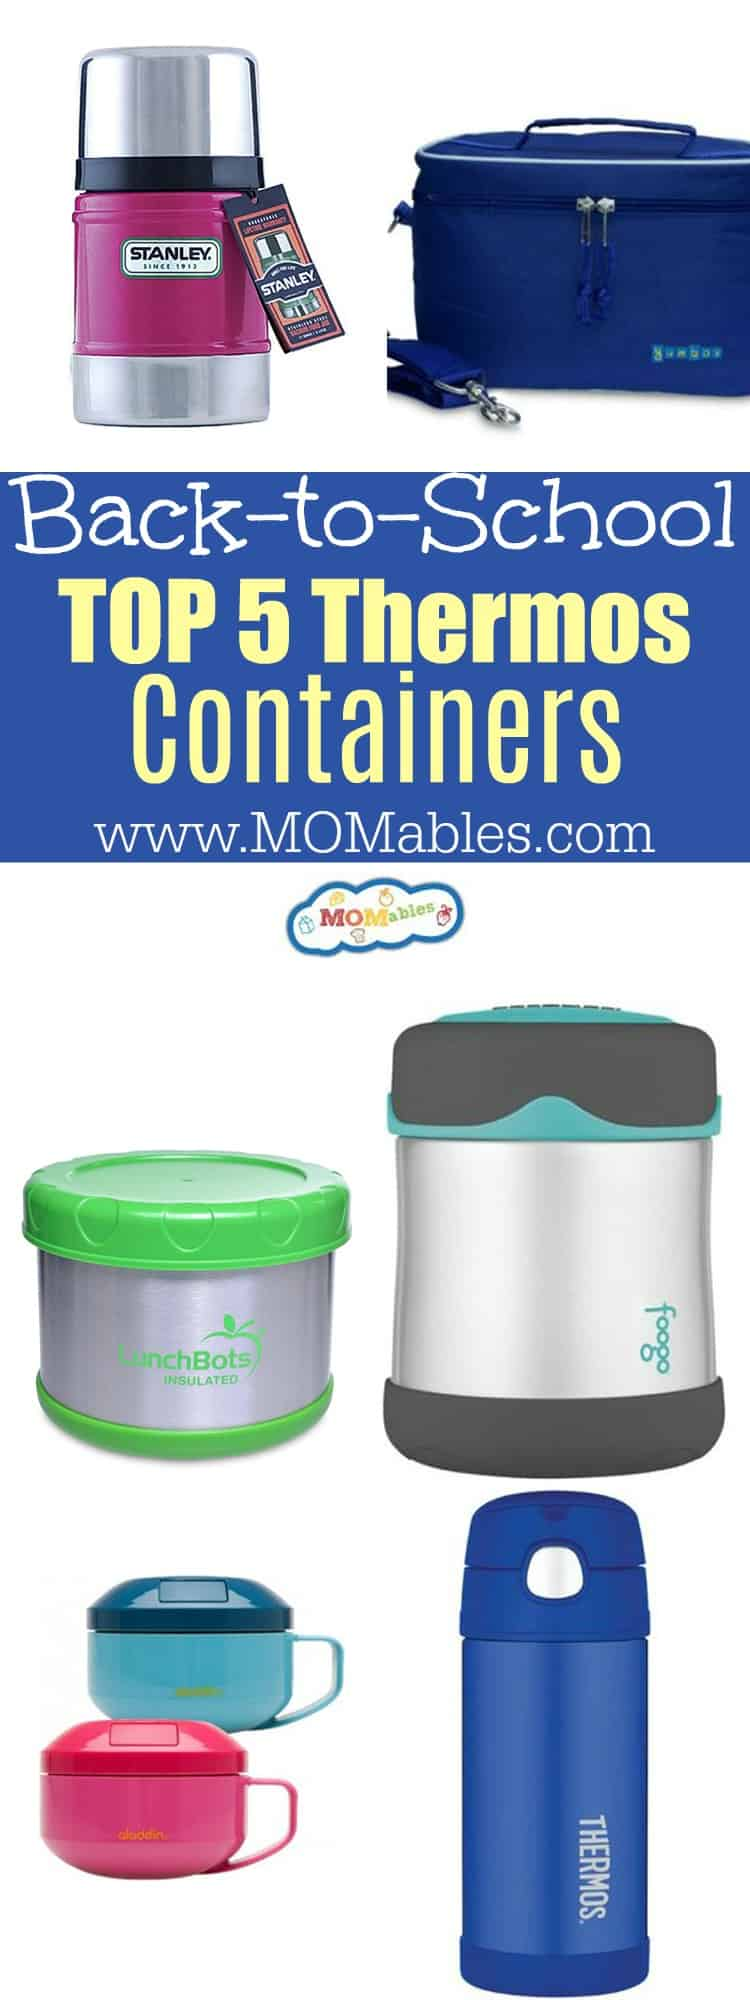 Top 5 Thermos Containers for school lunches. No leaks, hold the temperature, and age appropriate! #BacktoSchool